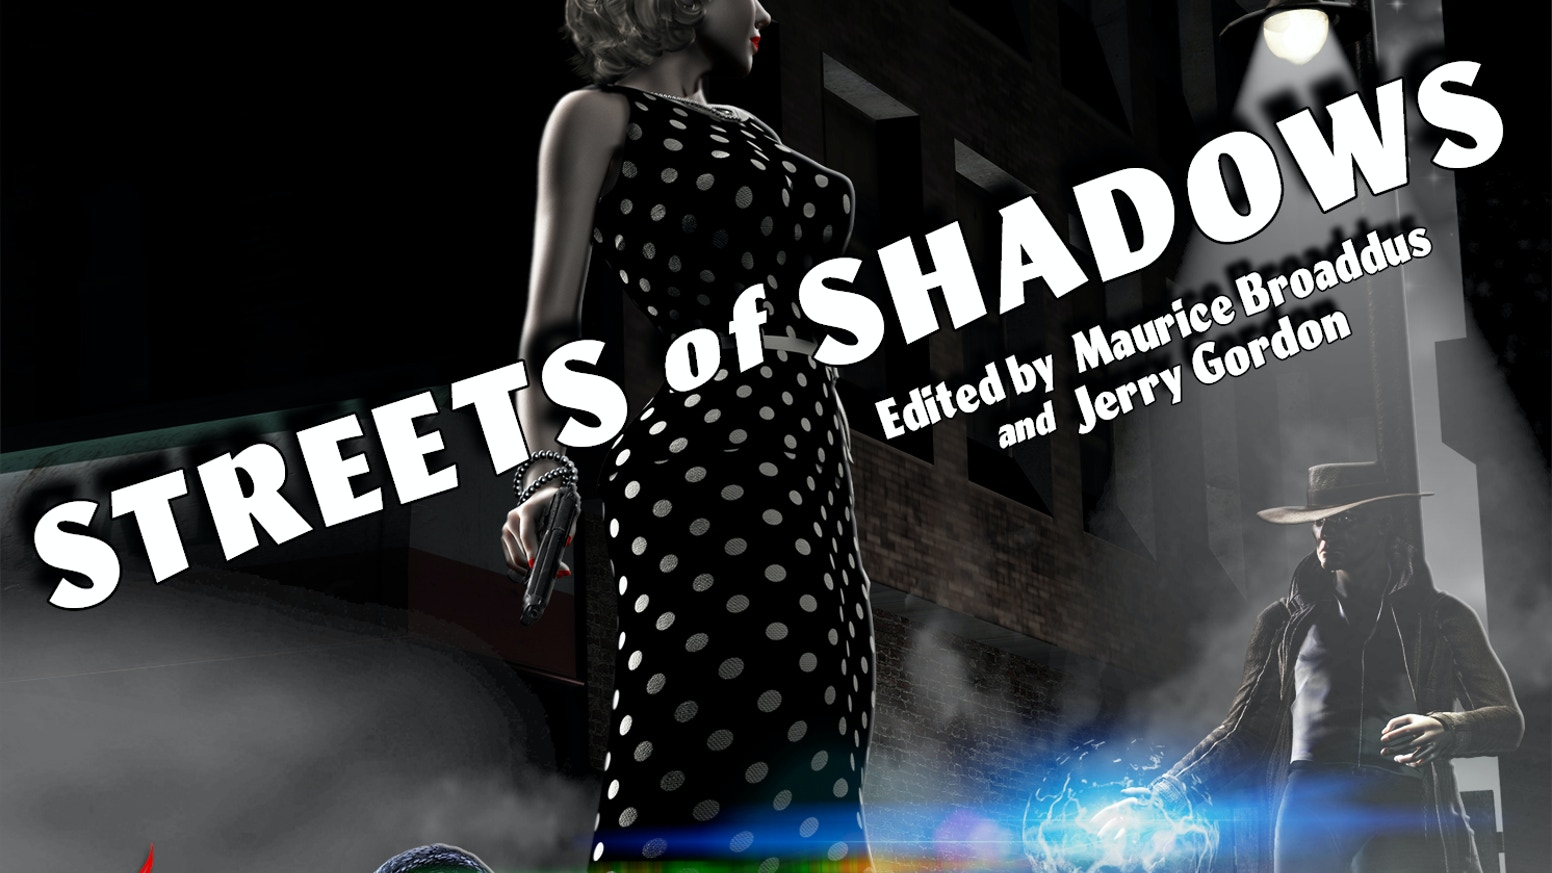 A new fiction anthology combining the genres of noir crime and urban fantasy, edited by the team behind the DARK FAITH anthologies.